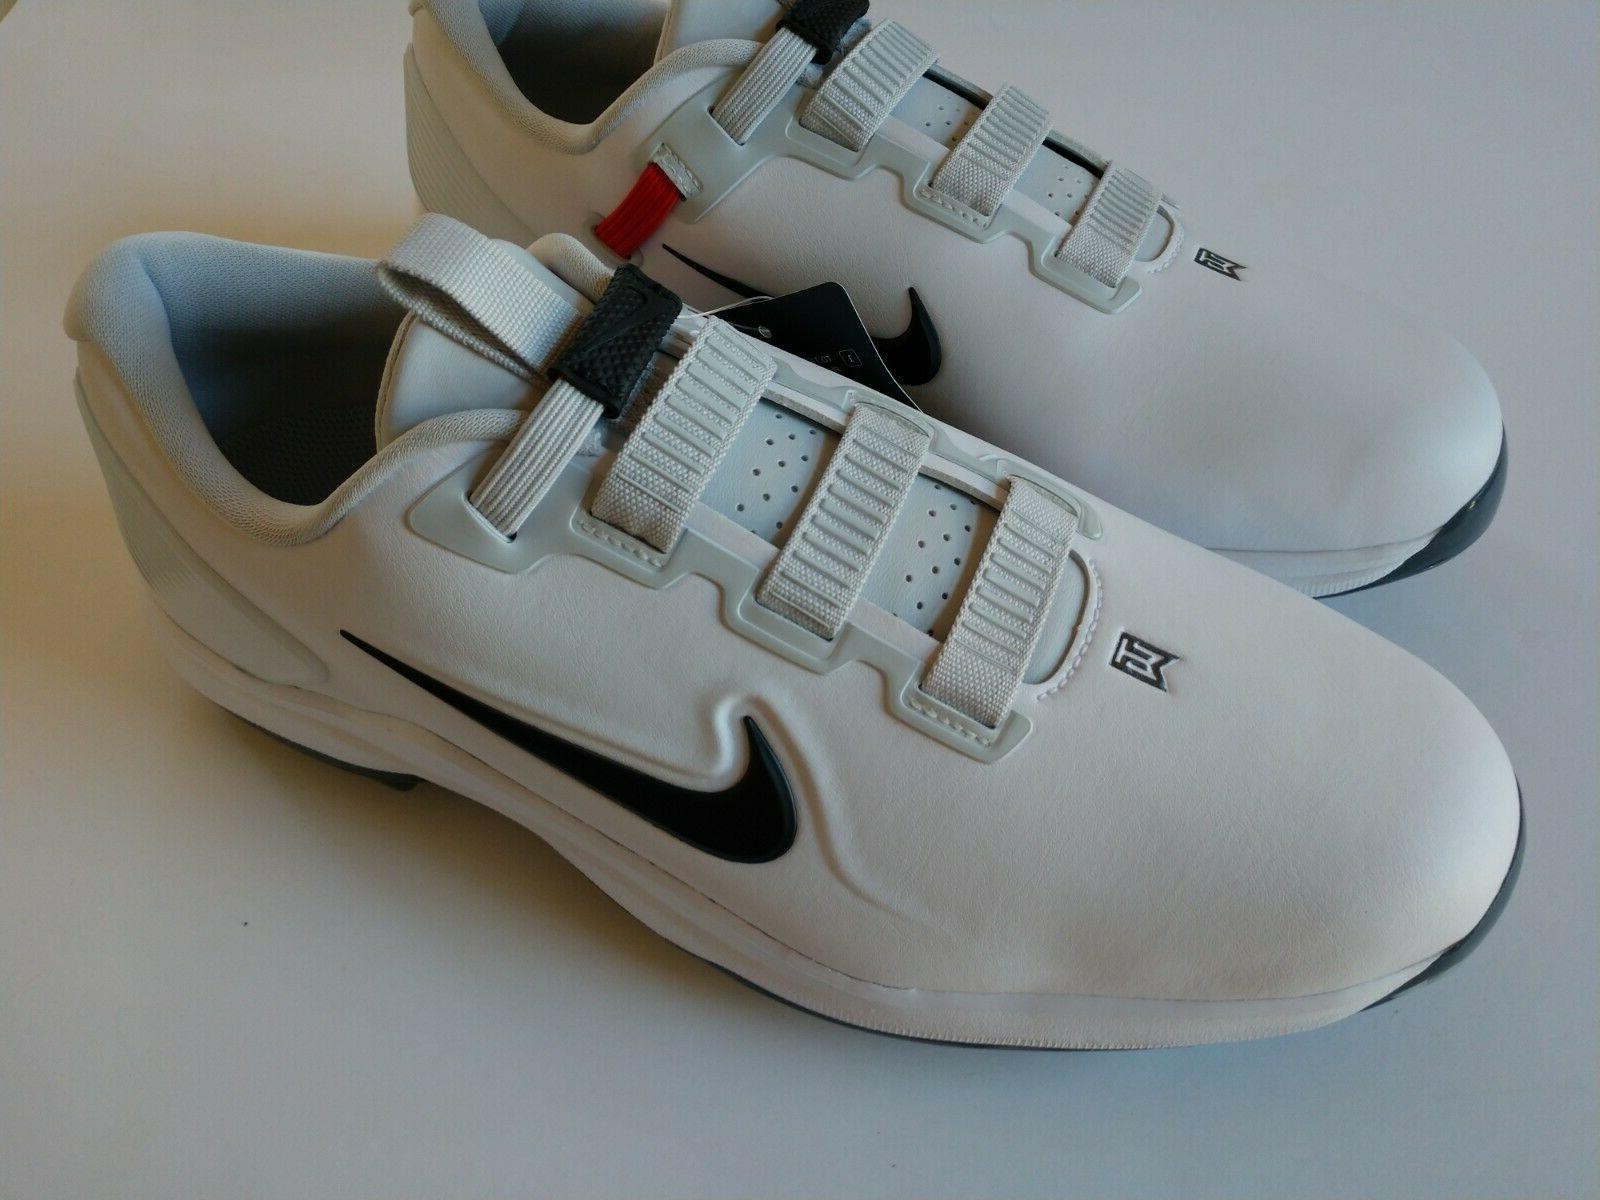 Nike Men's TW71 White CD6300-100